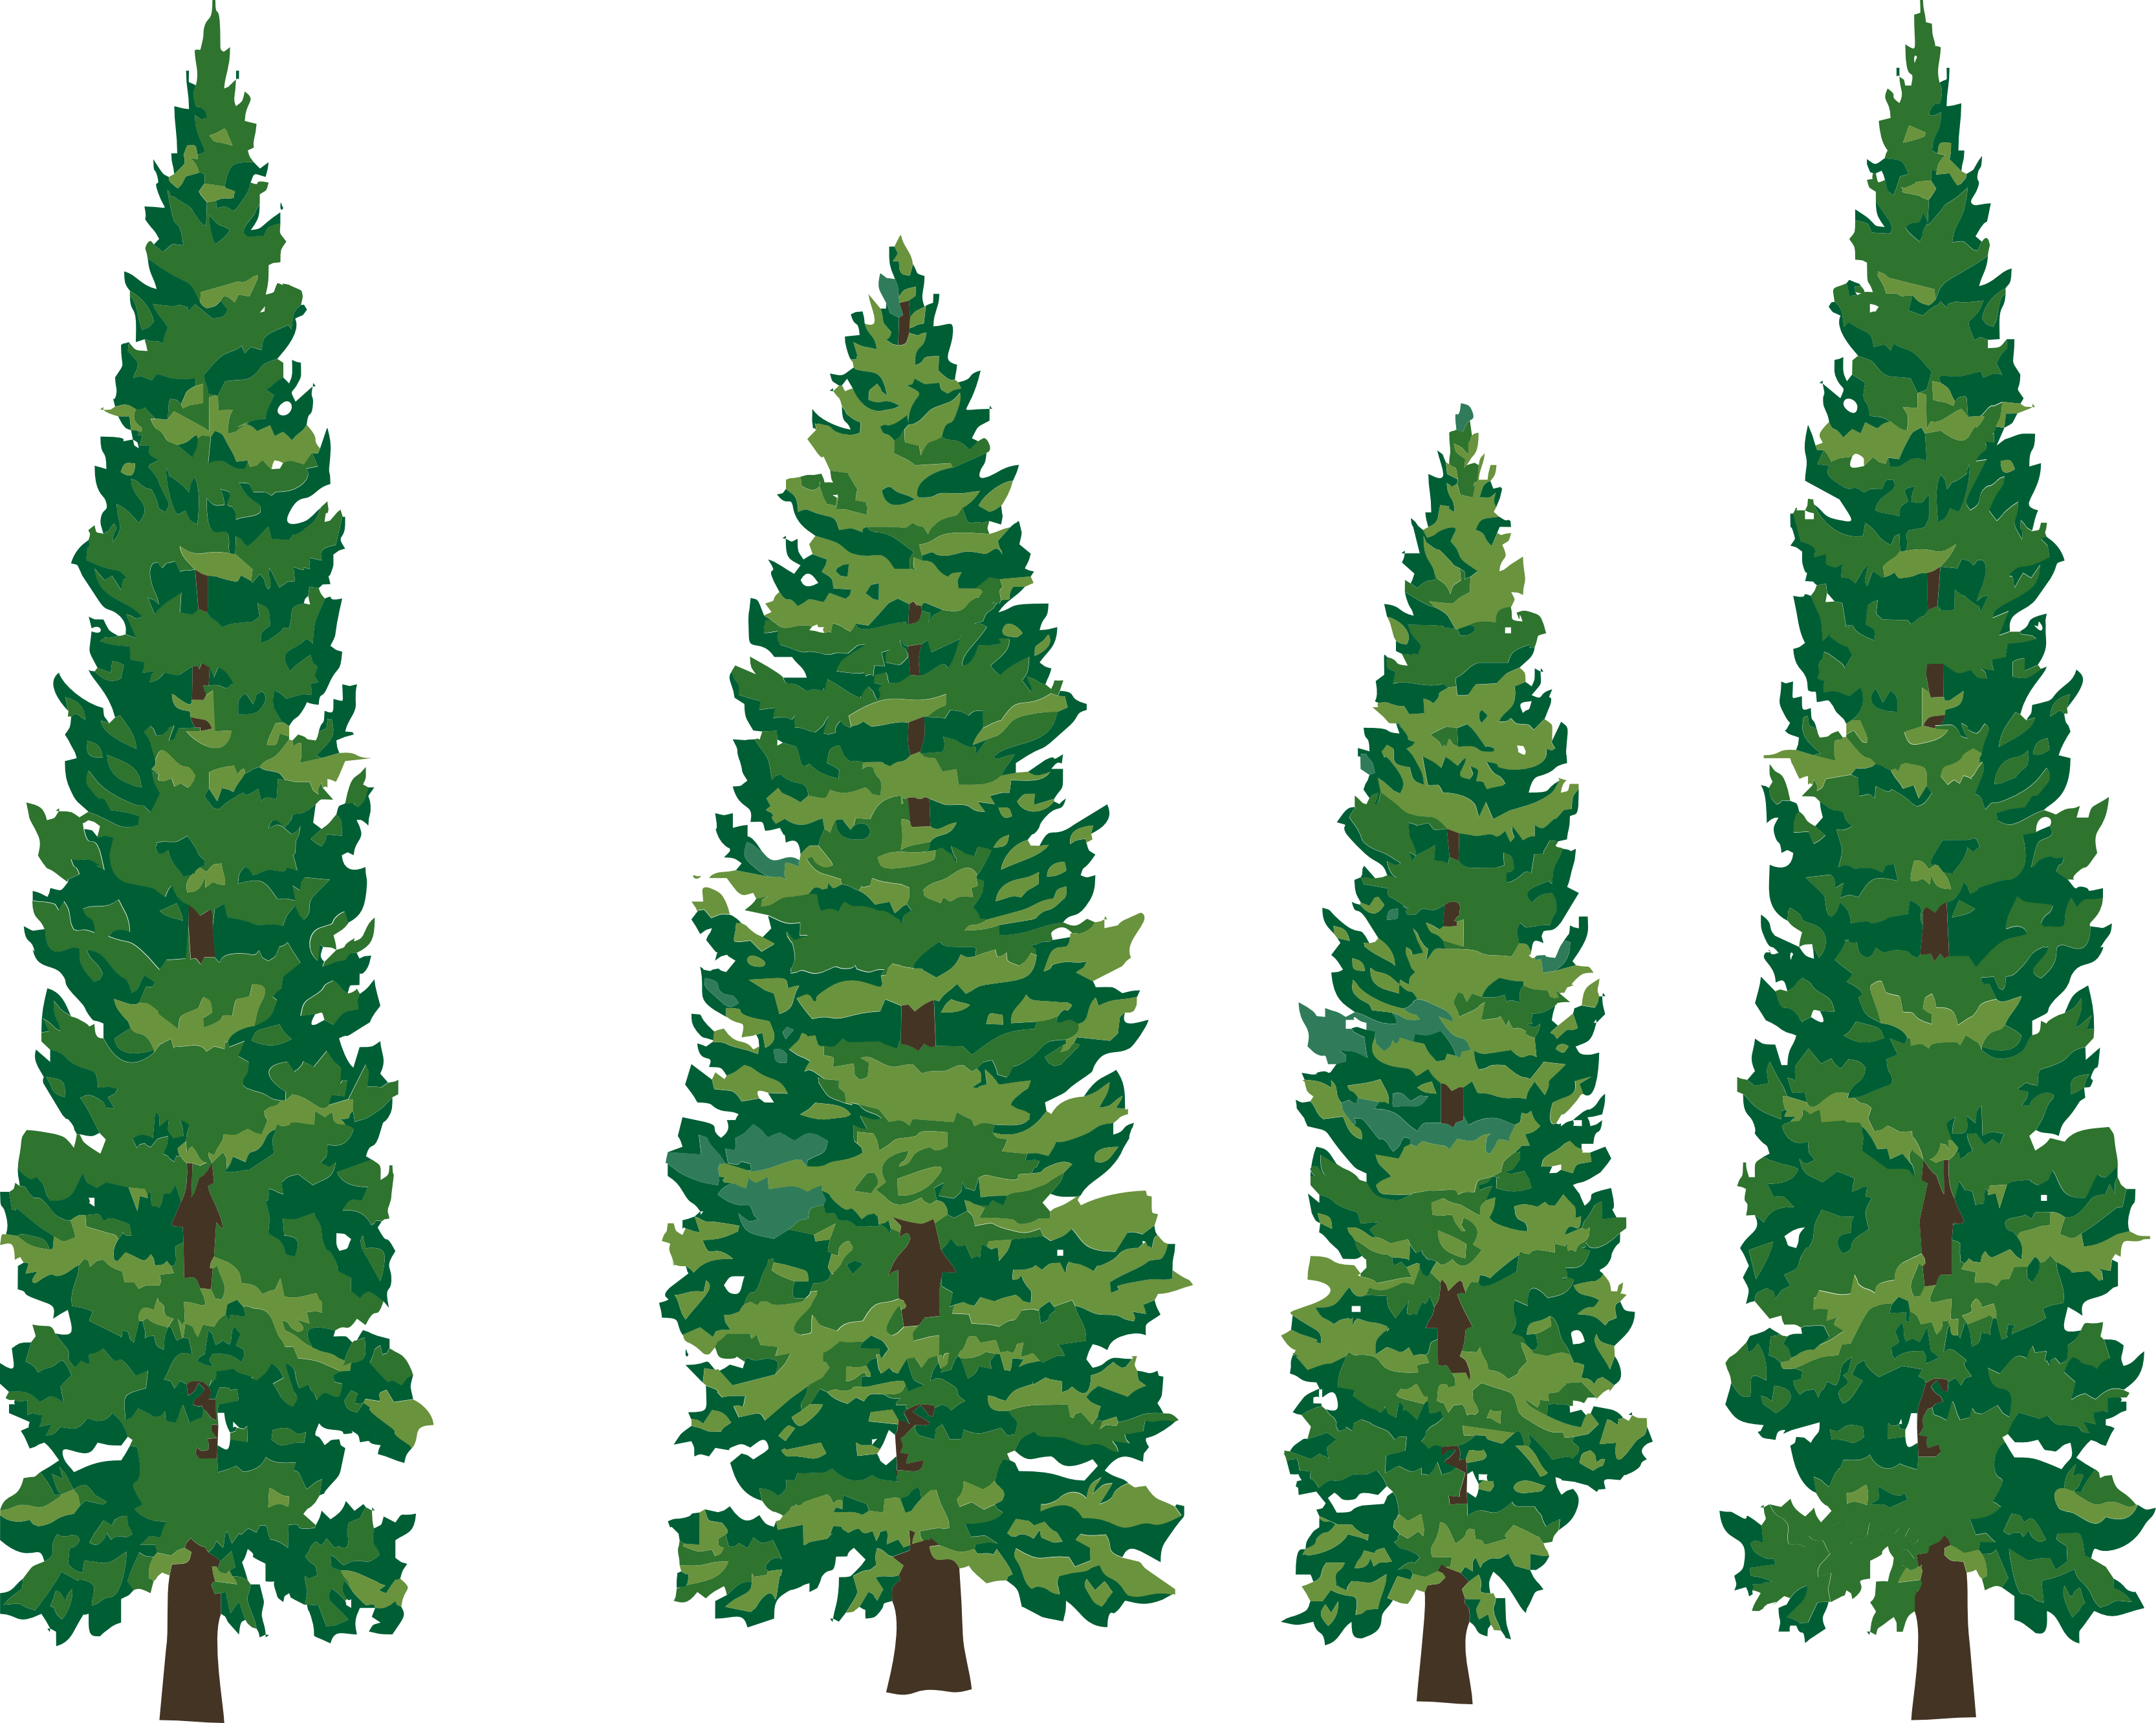 redwood forest clipart #15